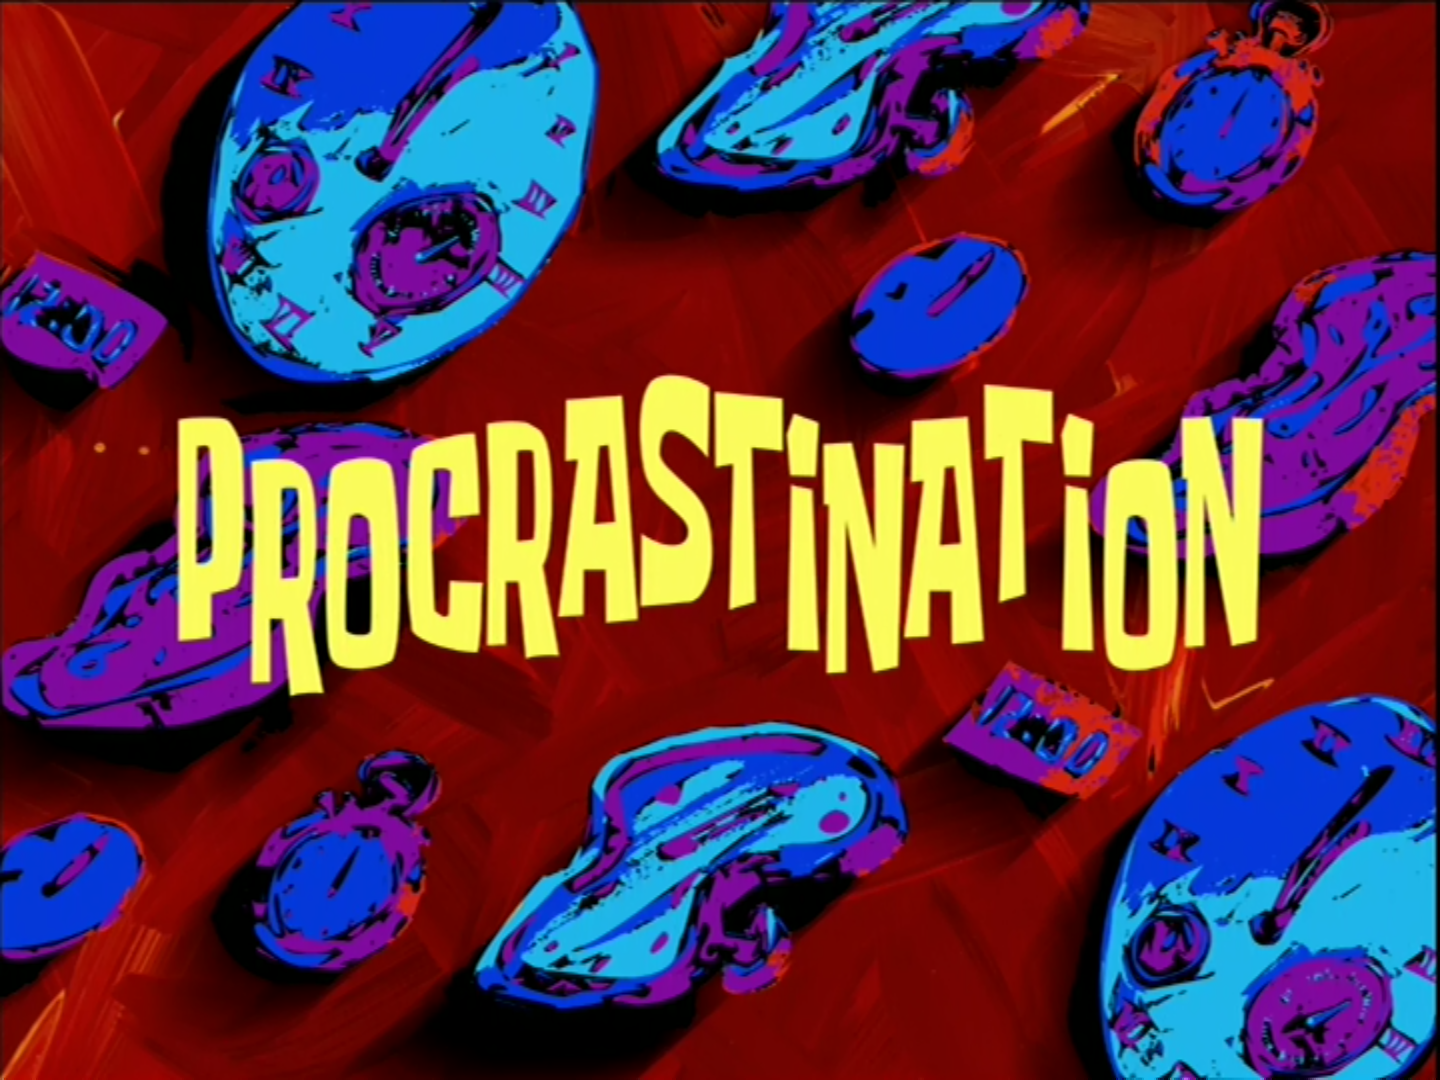 009 Procrastinationtranscript Encyclopedia Spongebobia Fandom Spongebob Writing Essay The Latestcb201806220 Gif Font For Hours Meme Rap Surprising Full